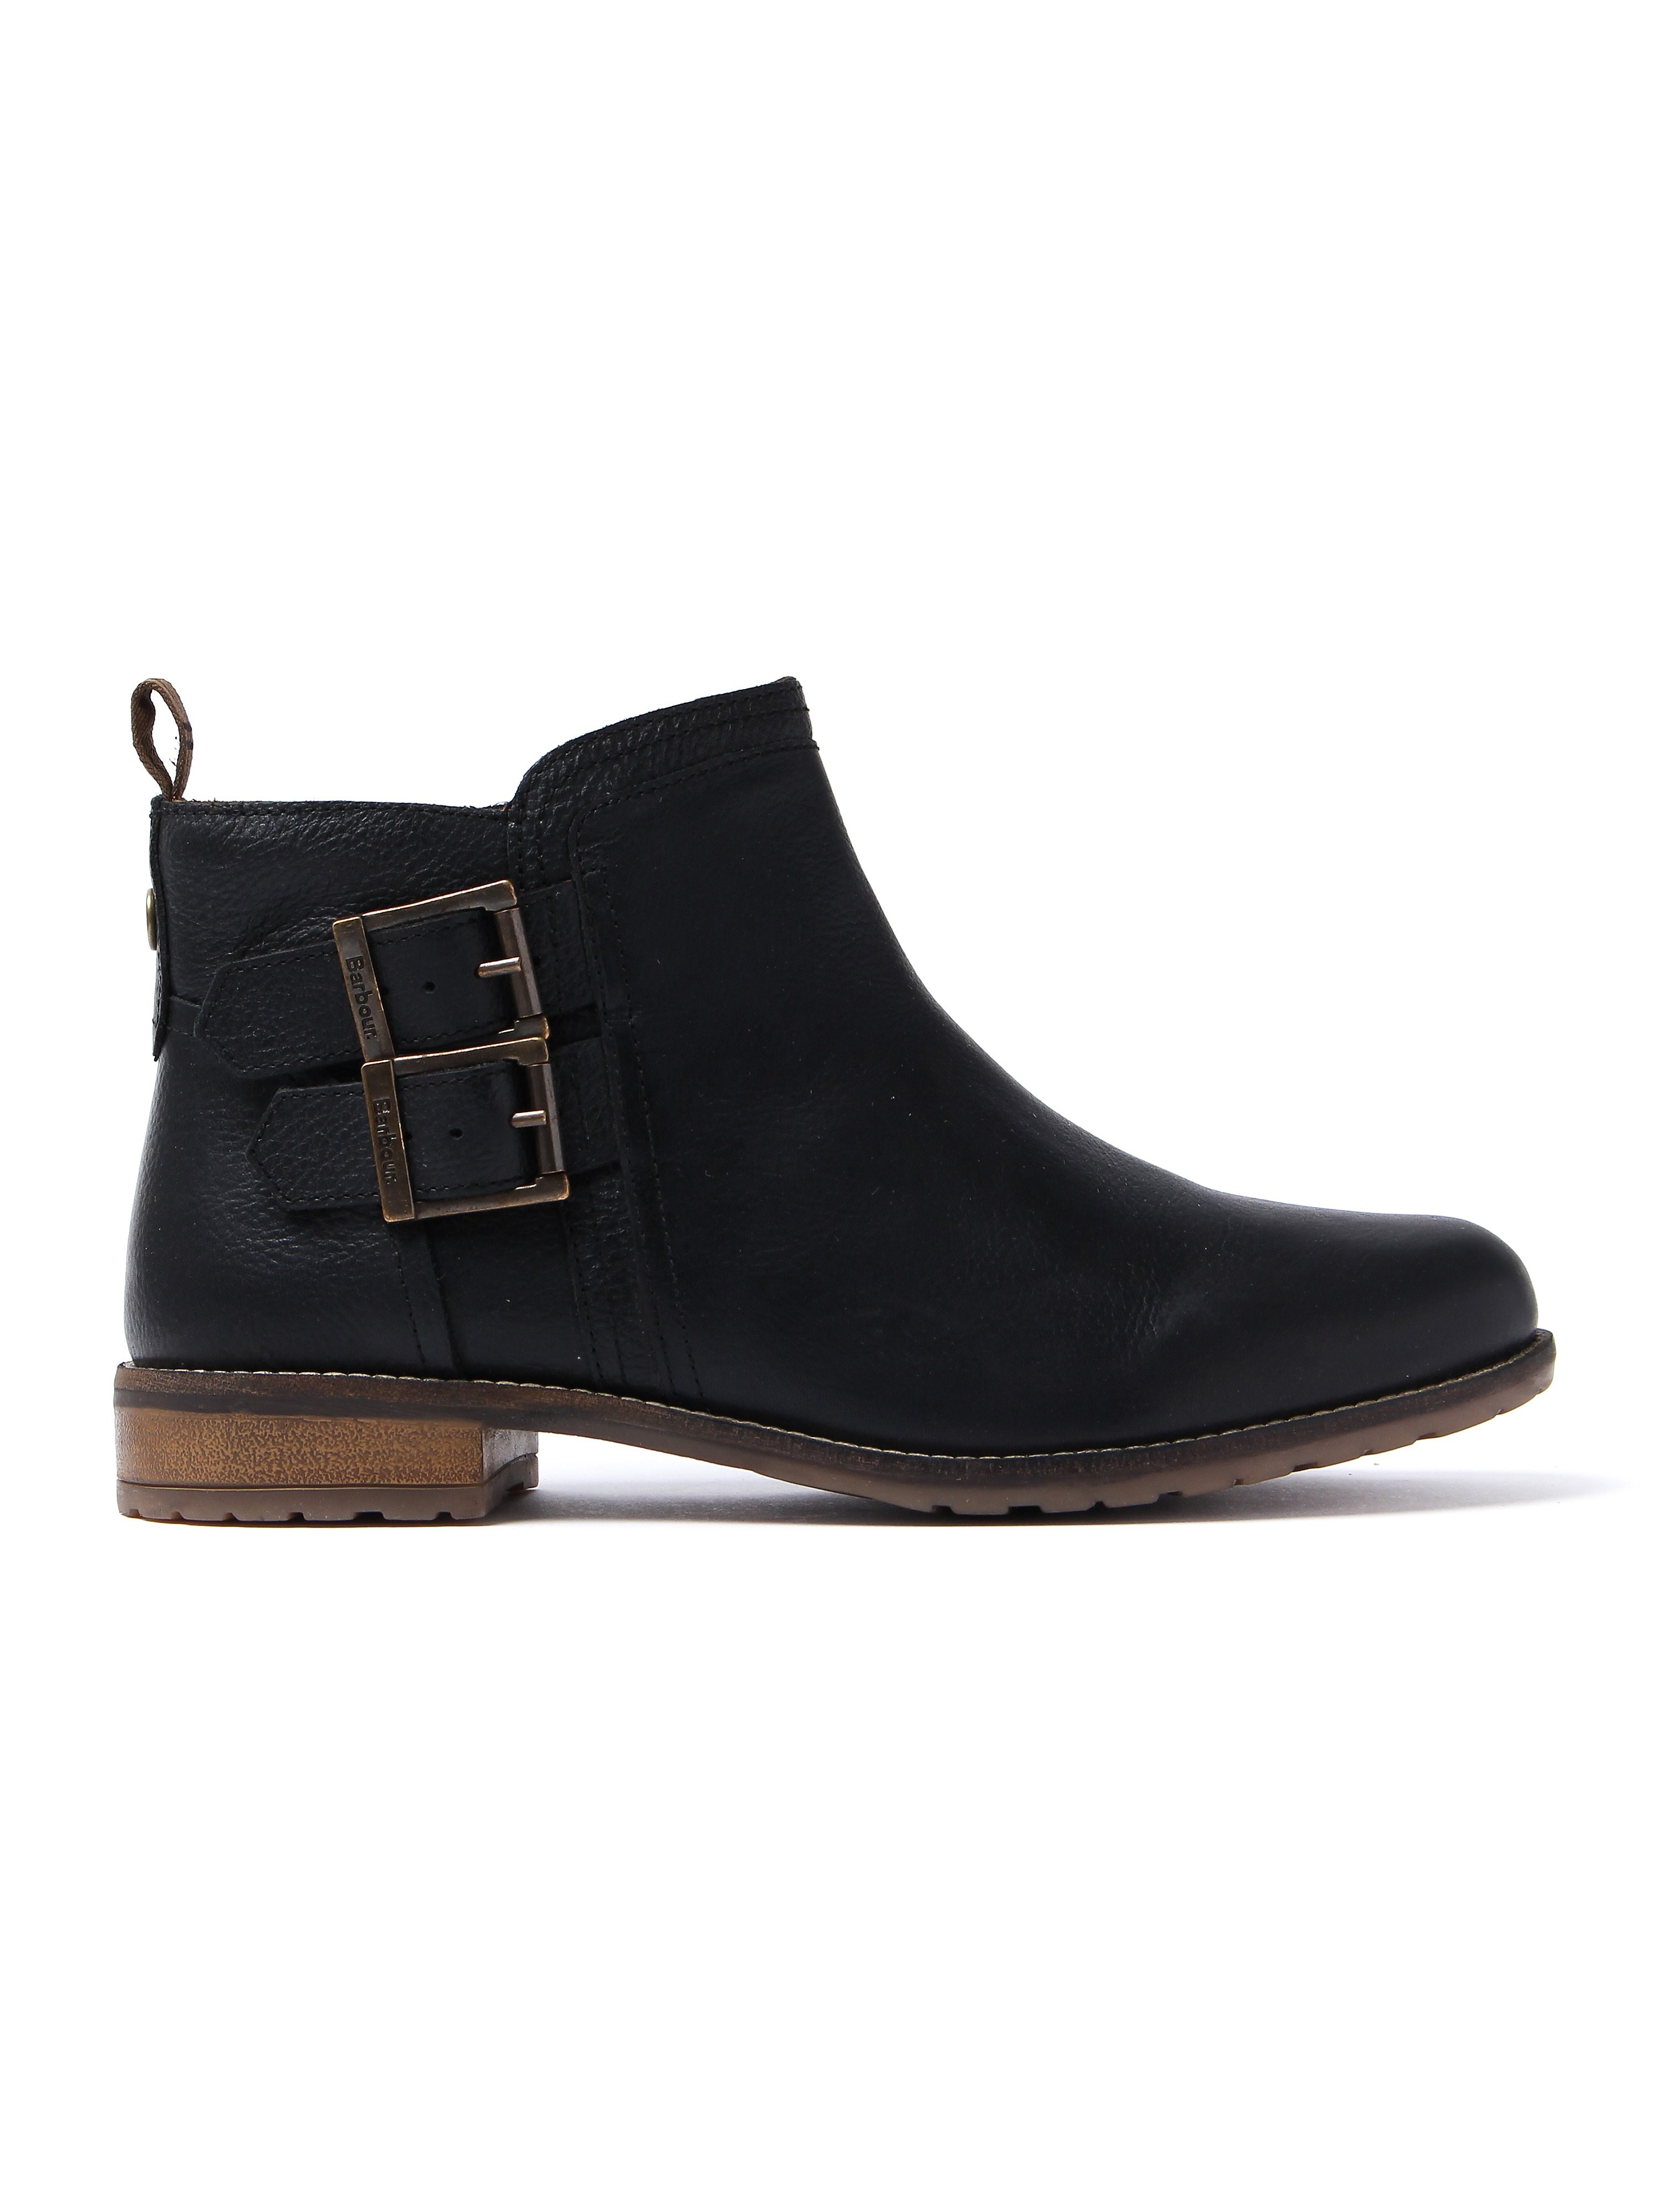 Barbour Women's Sarah Low Buckle Boots - Black Nubuck